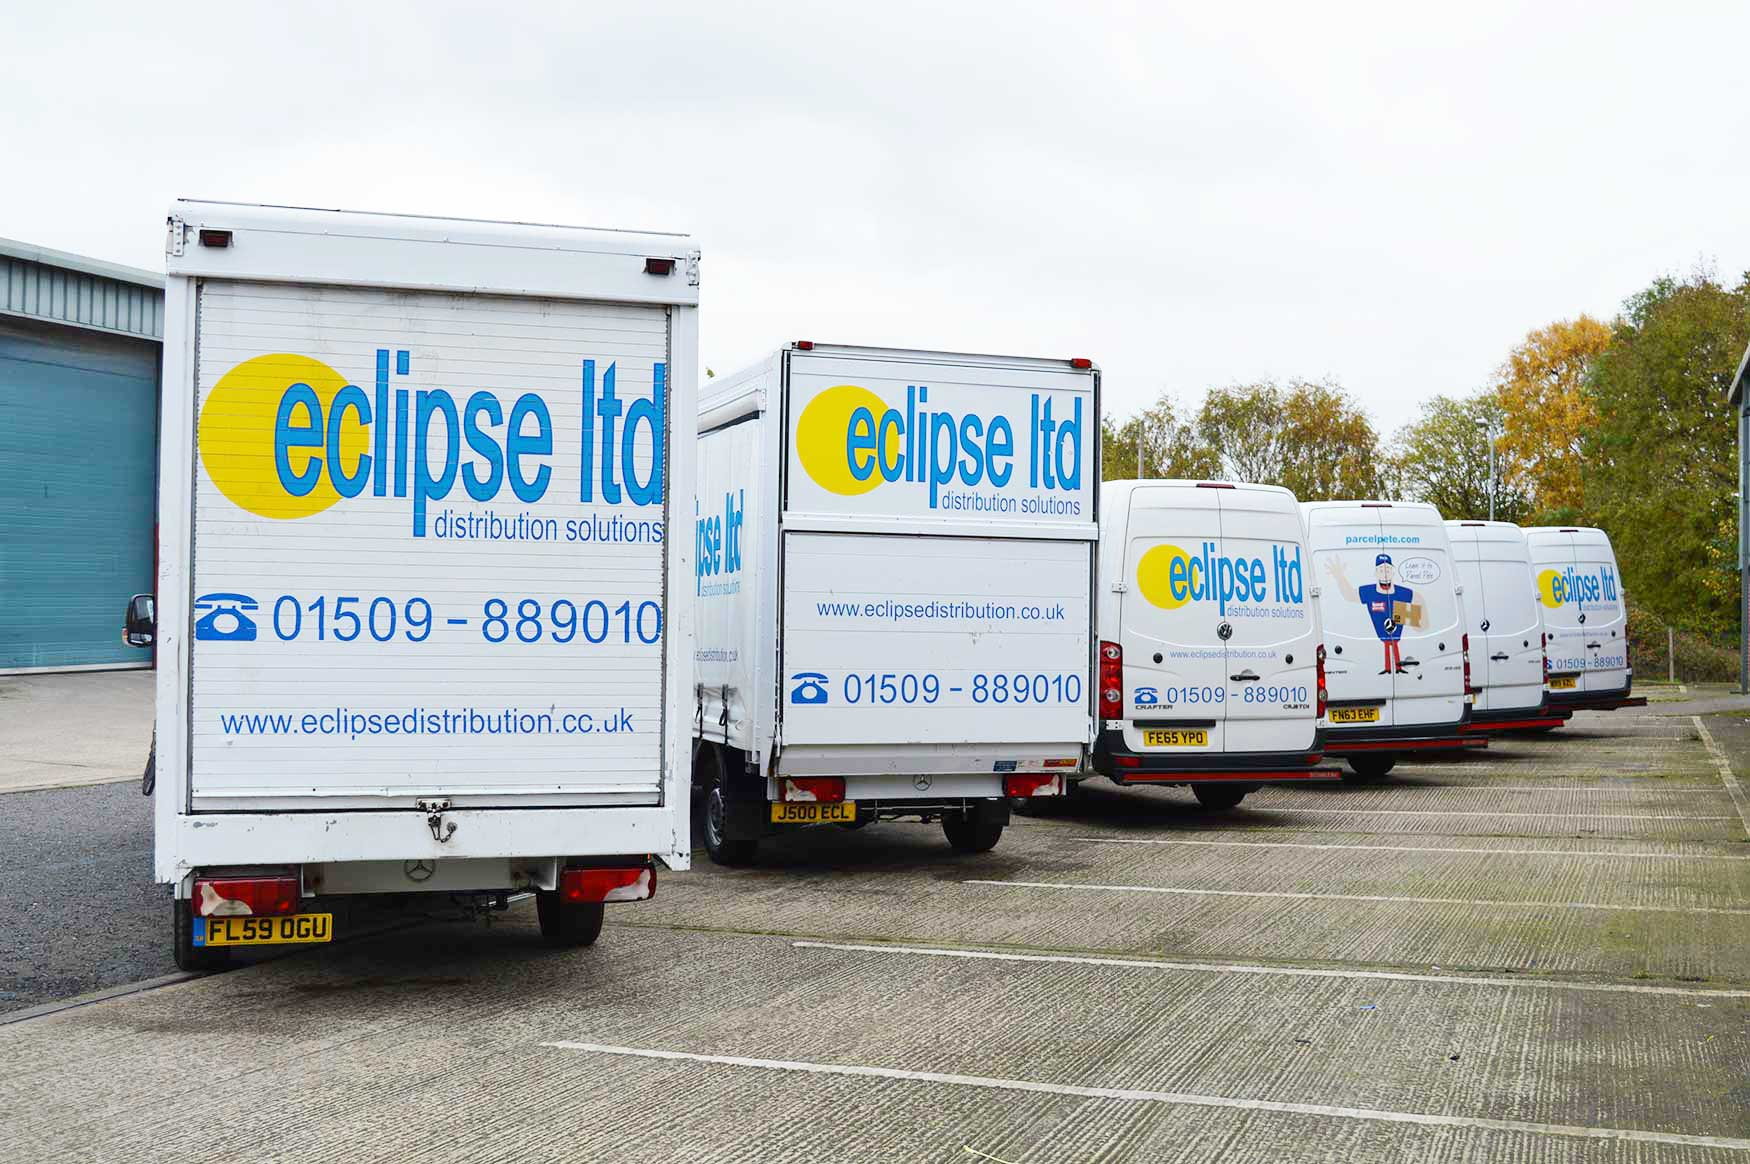 An image showing a rear view of the Eclipse Distribution Solutions Ltd fleet.